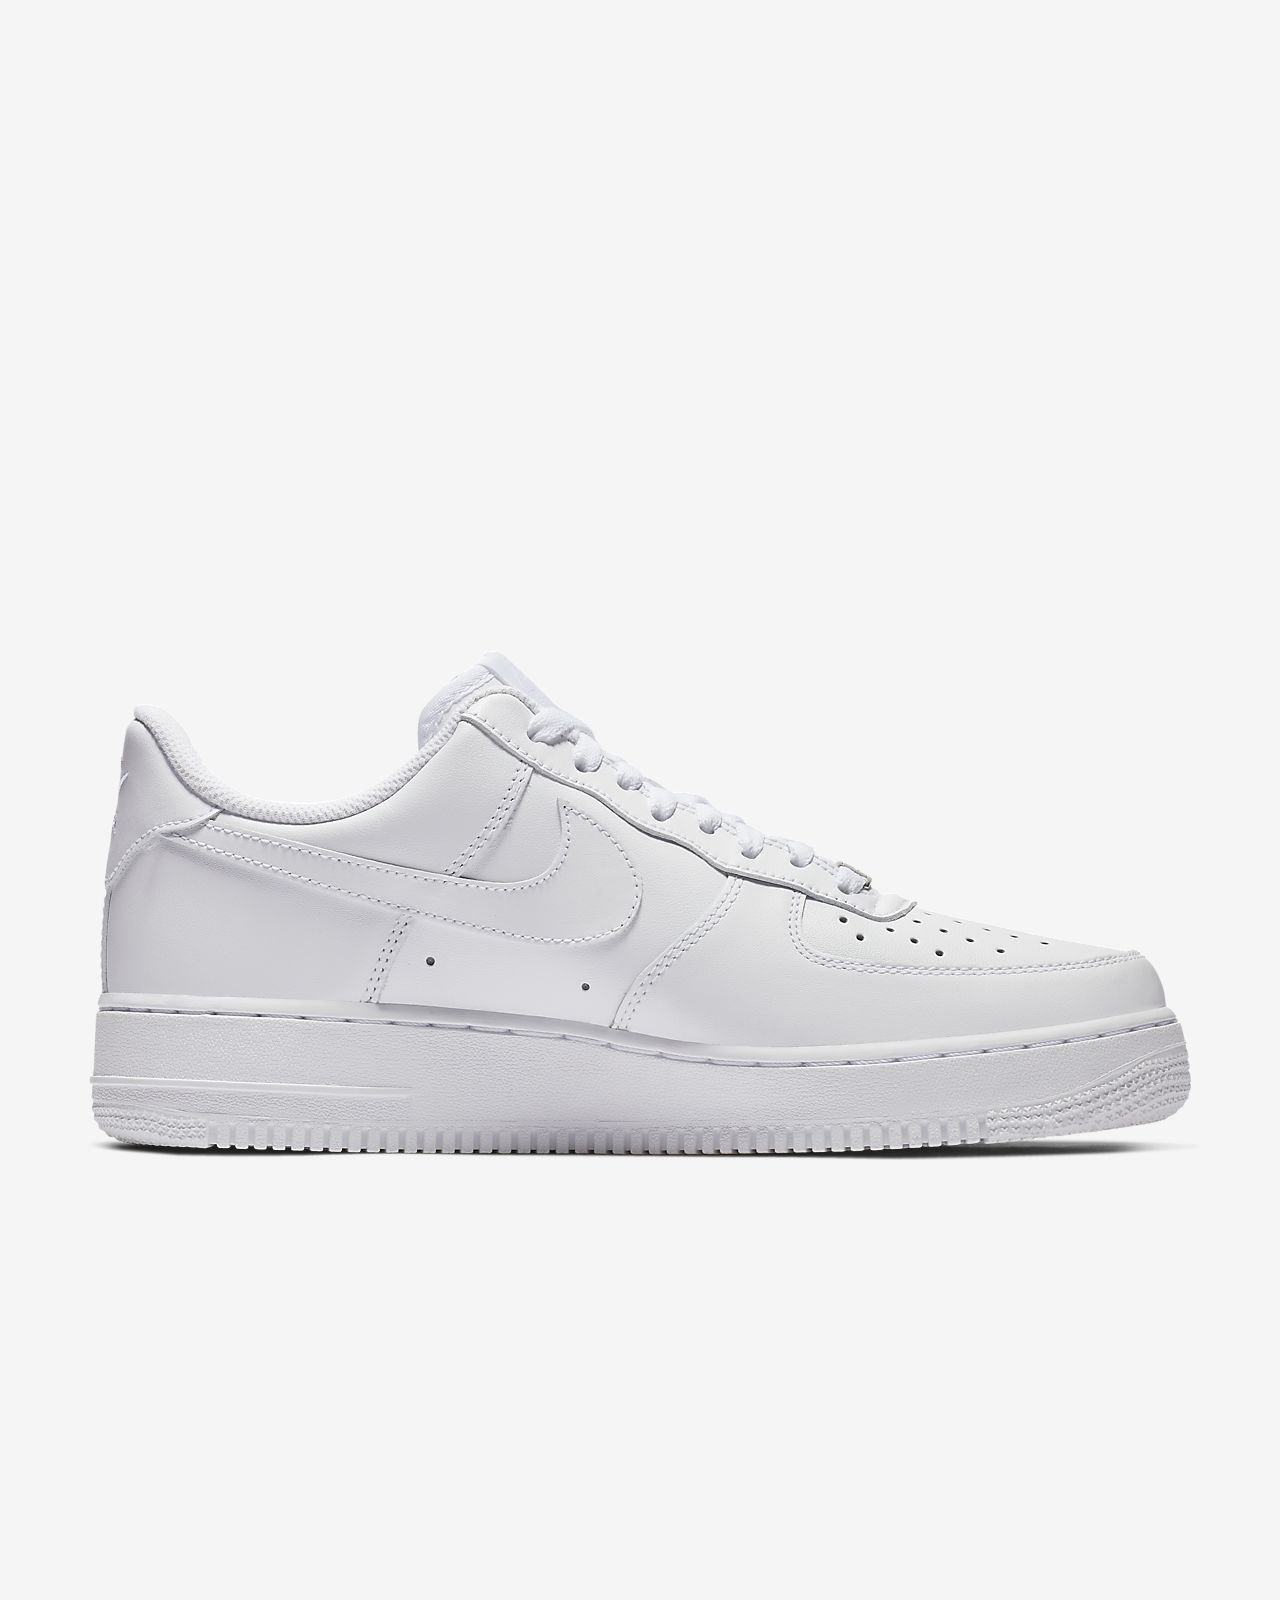 new concept 2d6a2 bbb92 ... Chaussure Nike Air Force 1  07 pour Femme